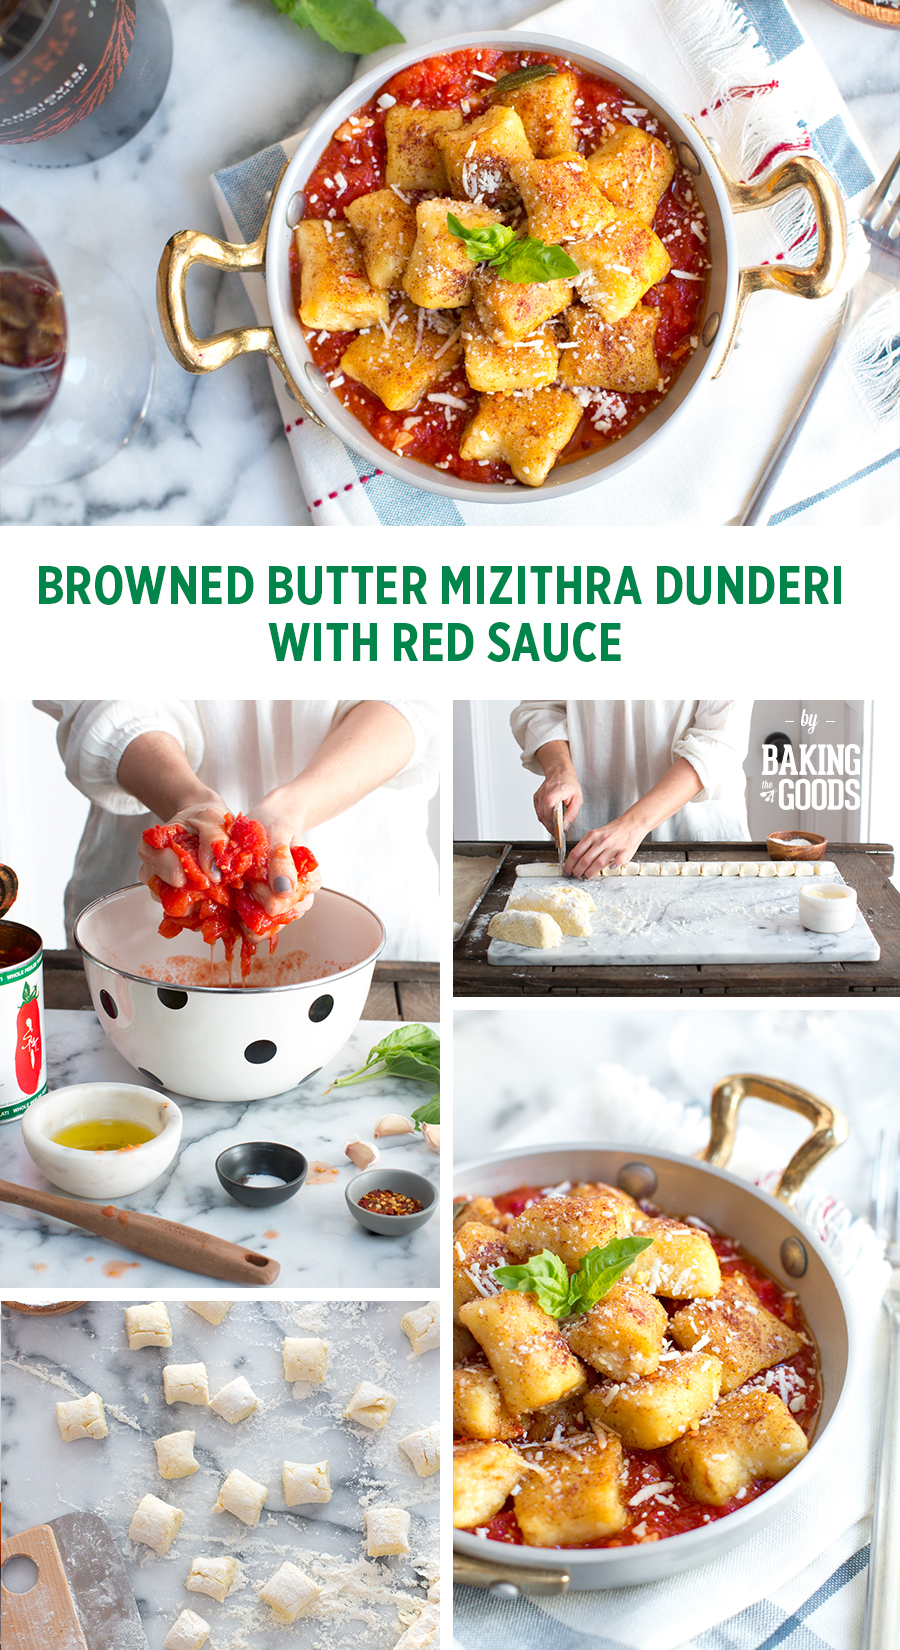 BROWNED BUTTER MIZITHRA DUNDERI WITH RED SAUCE